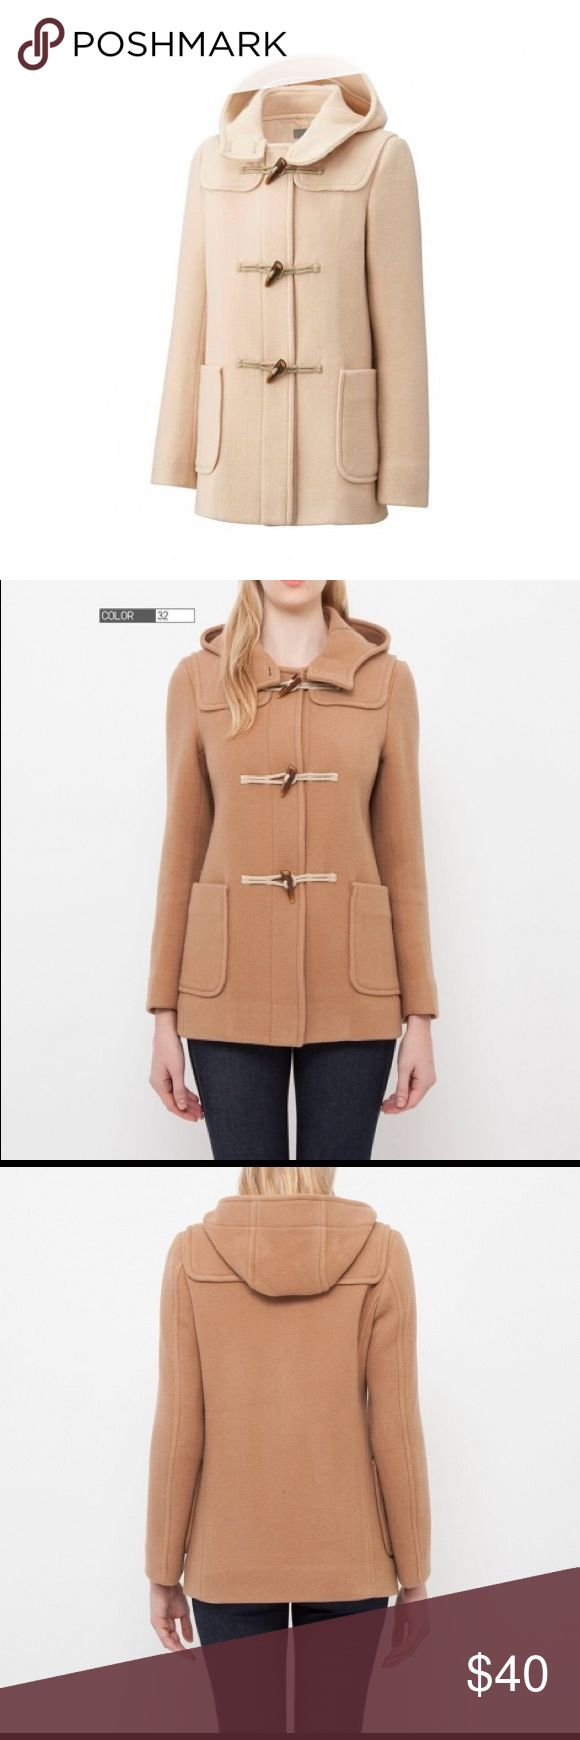 """Wool Duffle Coat """"A beautiful, warm duffle coat featuring classic duffle design with pockets, storm patches and toggles. Made with a comfortable, lightweight wool blend, it will keep you warm for long periods of time without weighing you down."""" Like new condition. Barely worn. Color is cream, first photo. Uniqlo Jackets & Coats"""